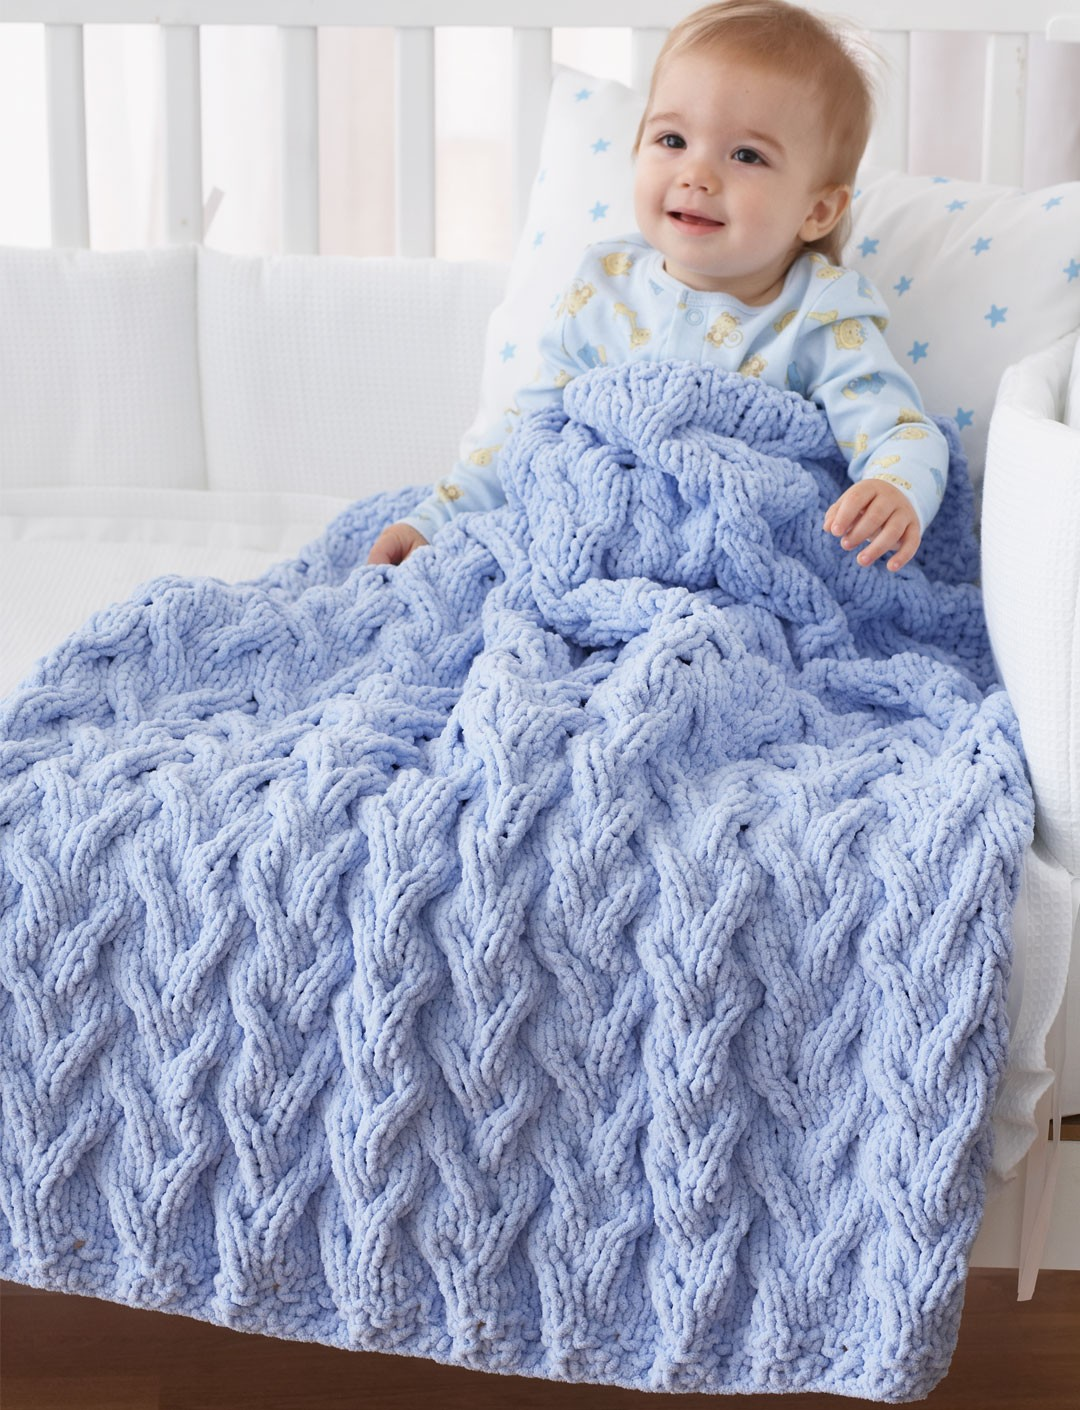 Knitted Baby Blanket Free Pattern : Bernat Shadow Cable Baby Blanket, Knit Pattern Yarnspirations